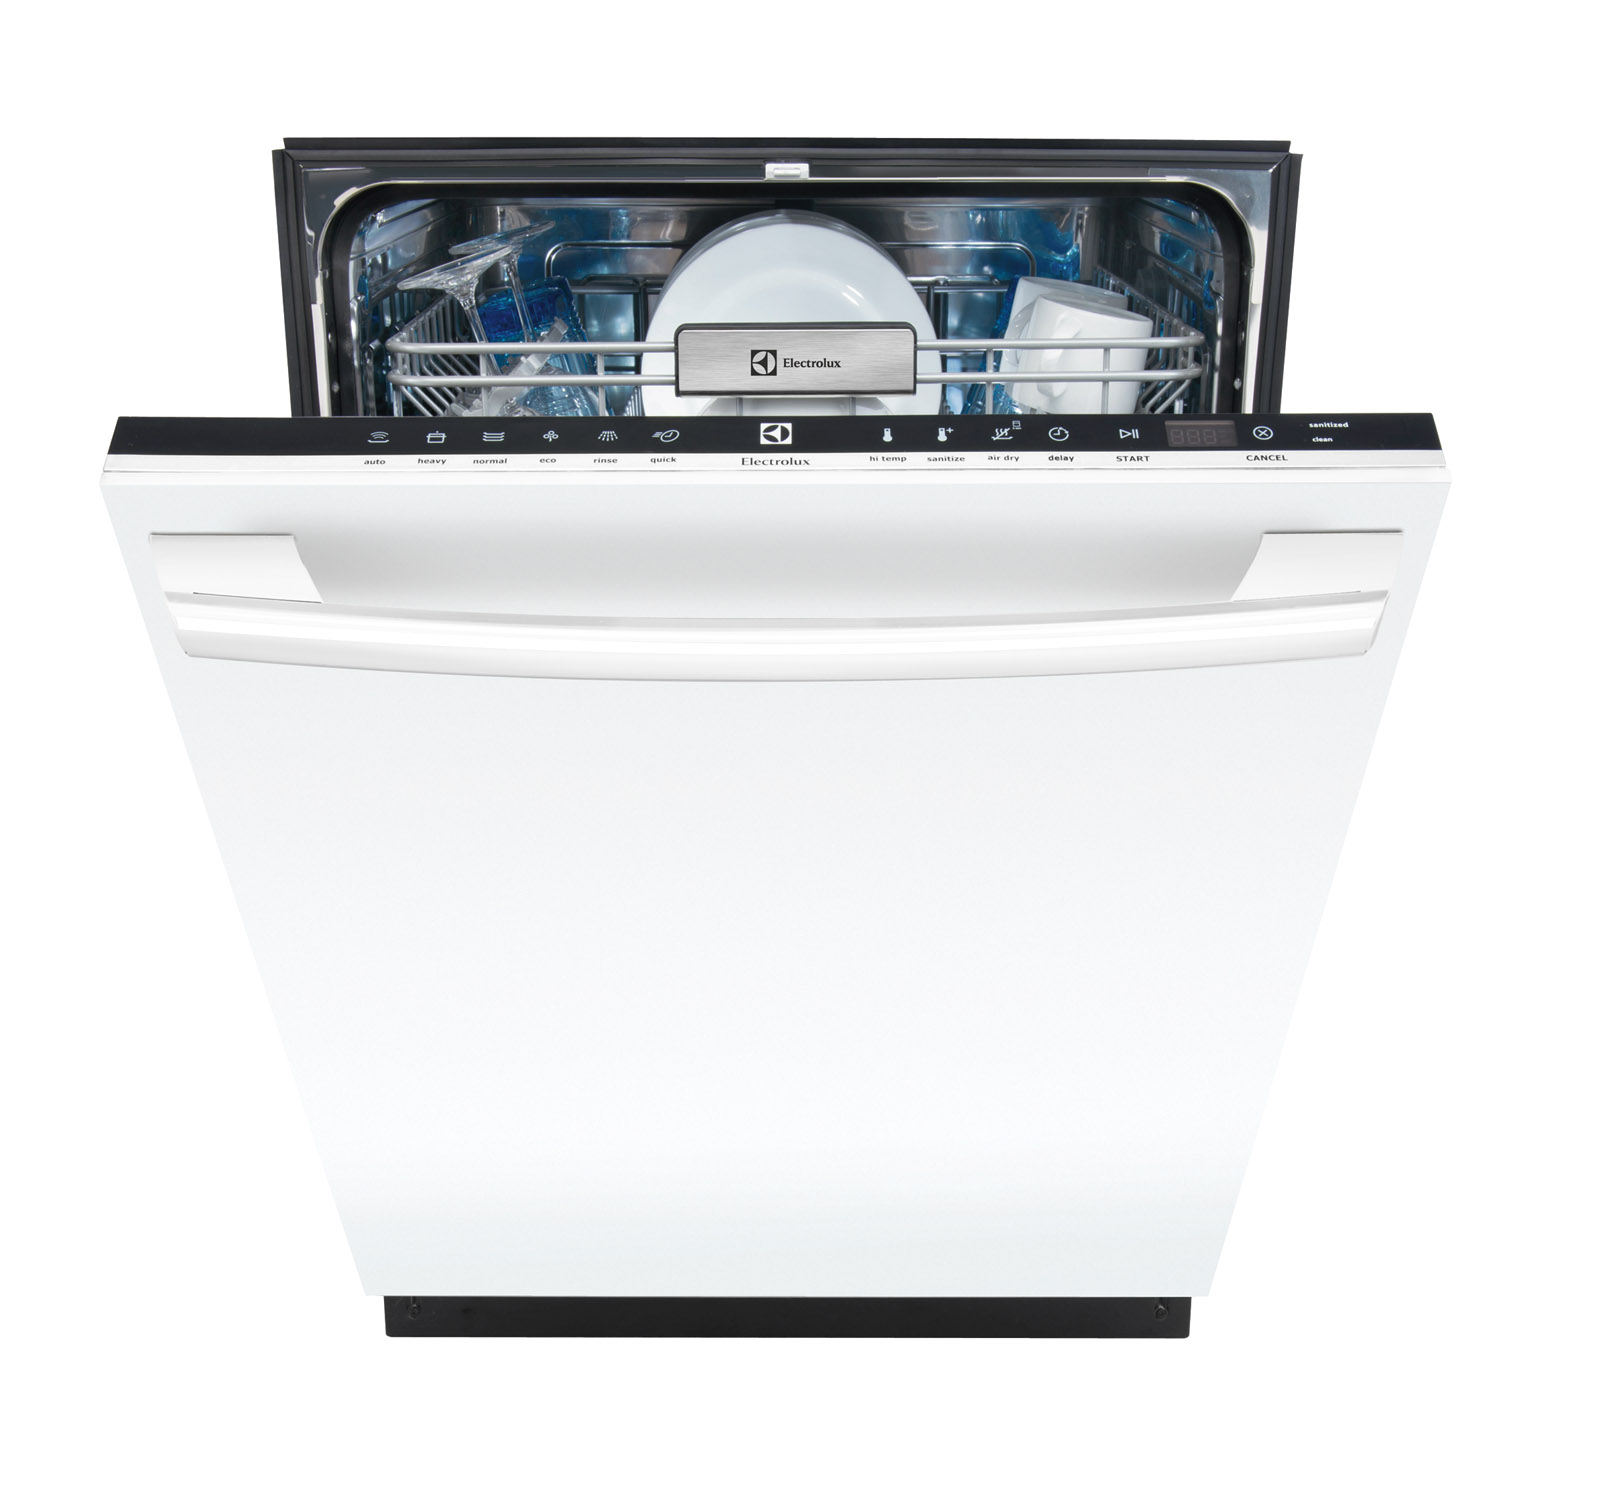 "Electrolux 24"" Built-In Dishwasher - White"